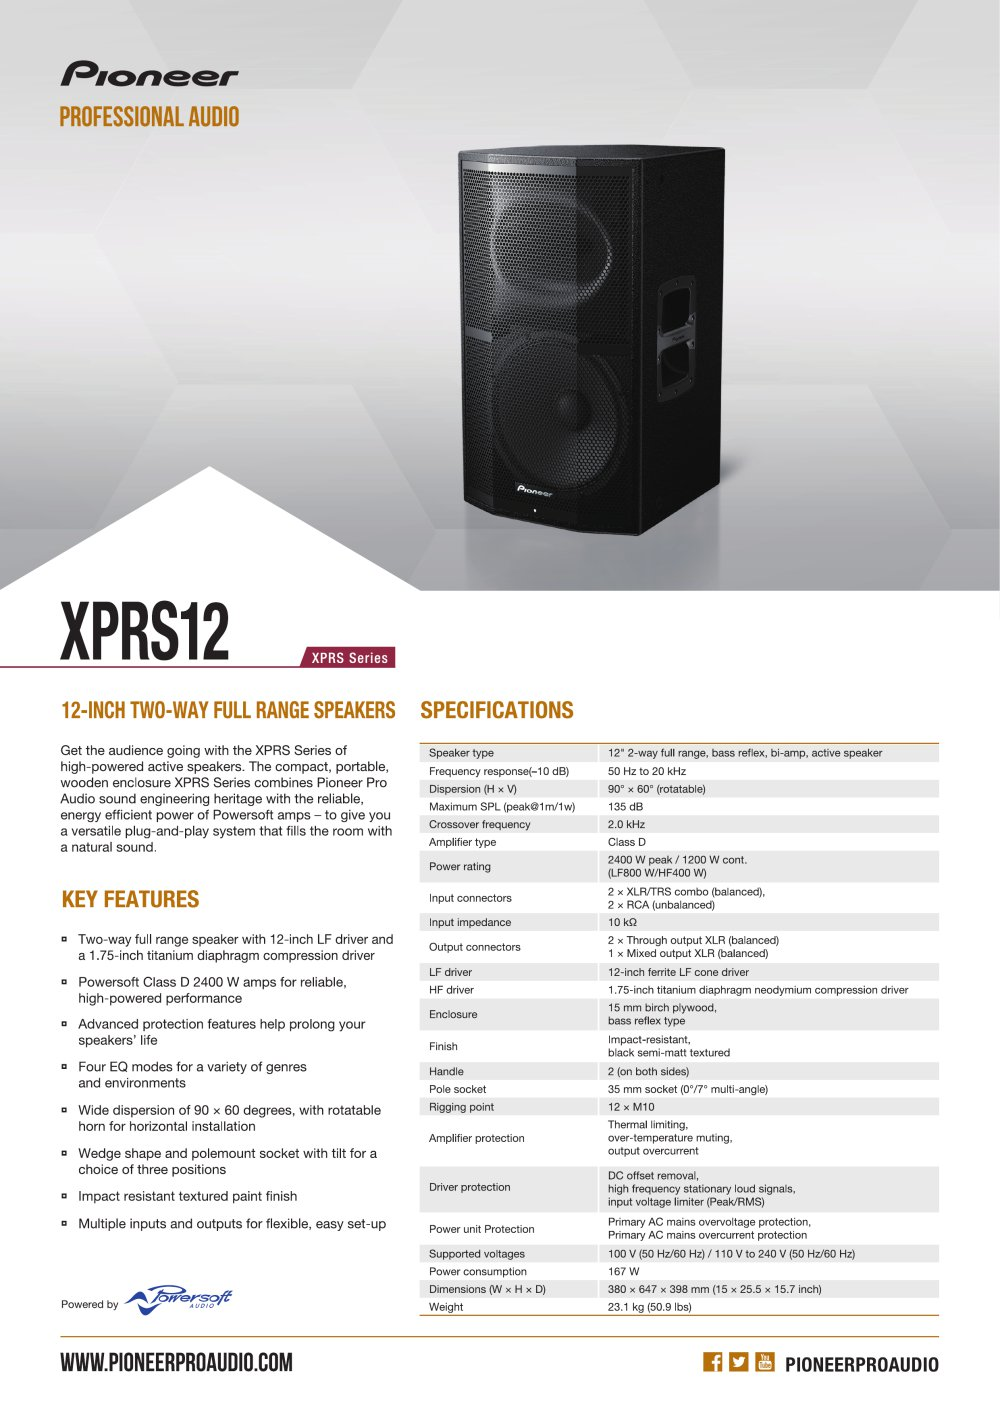 Xprs 12 Pioneer Pro Audio Pdf Catalogues Documentation Brochures Inch Full Range 1 2 Pages